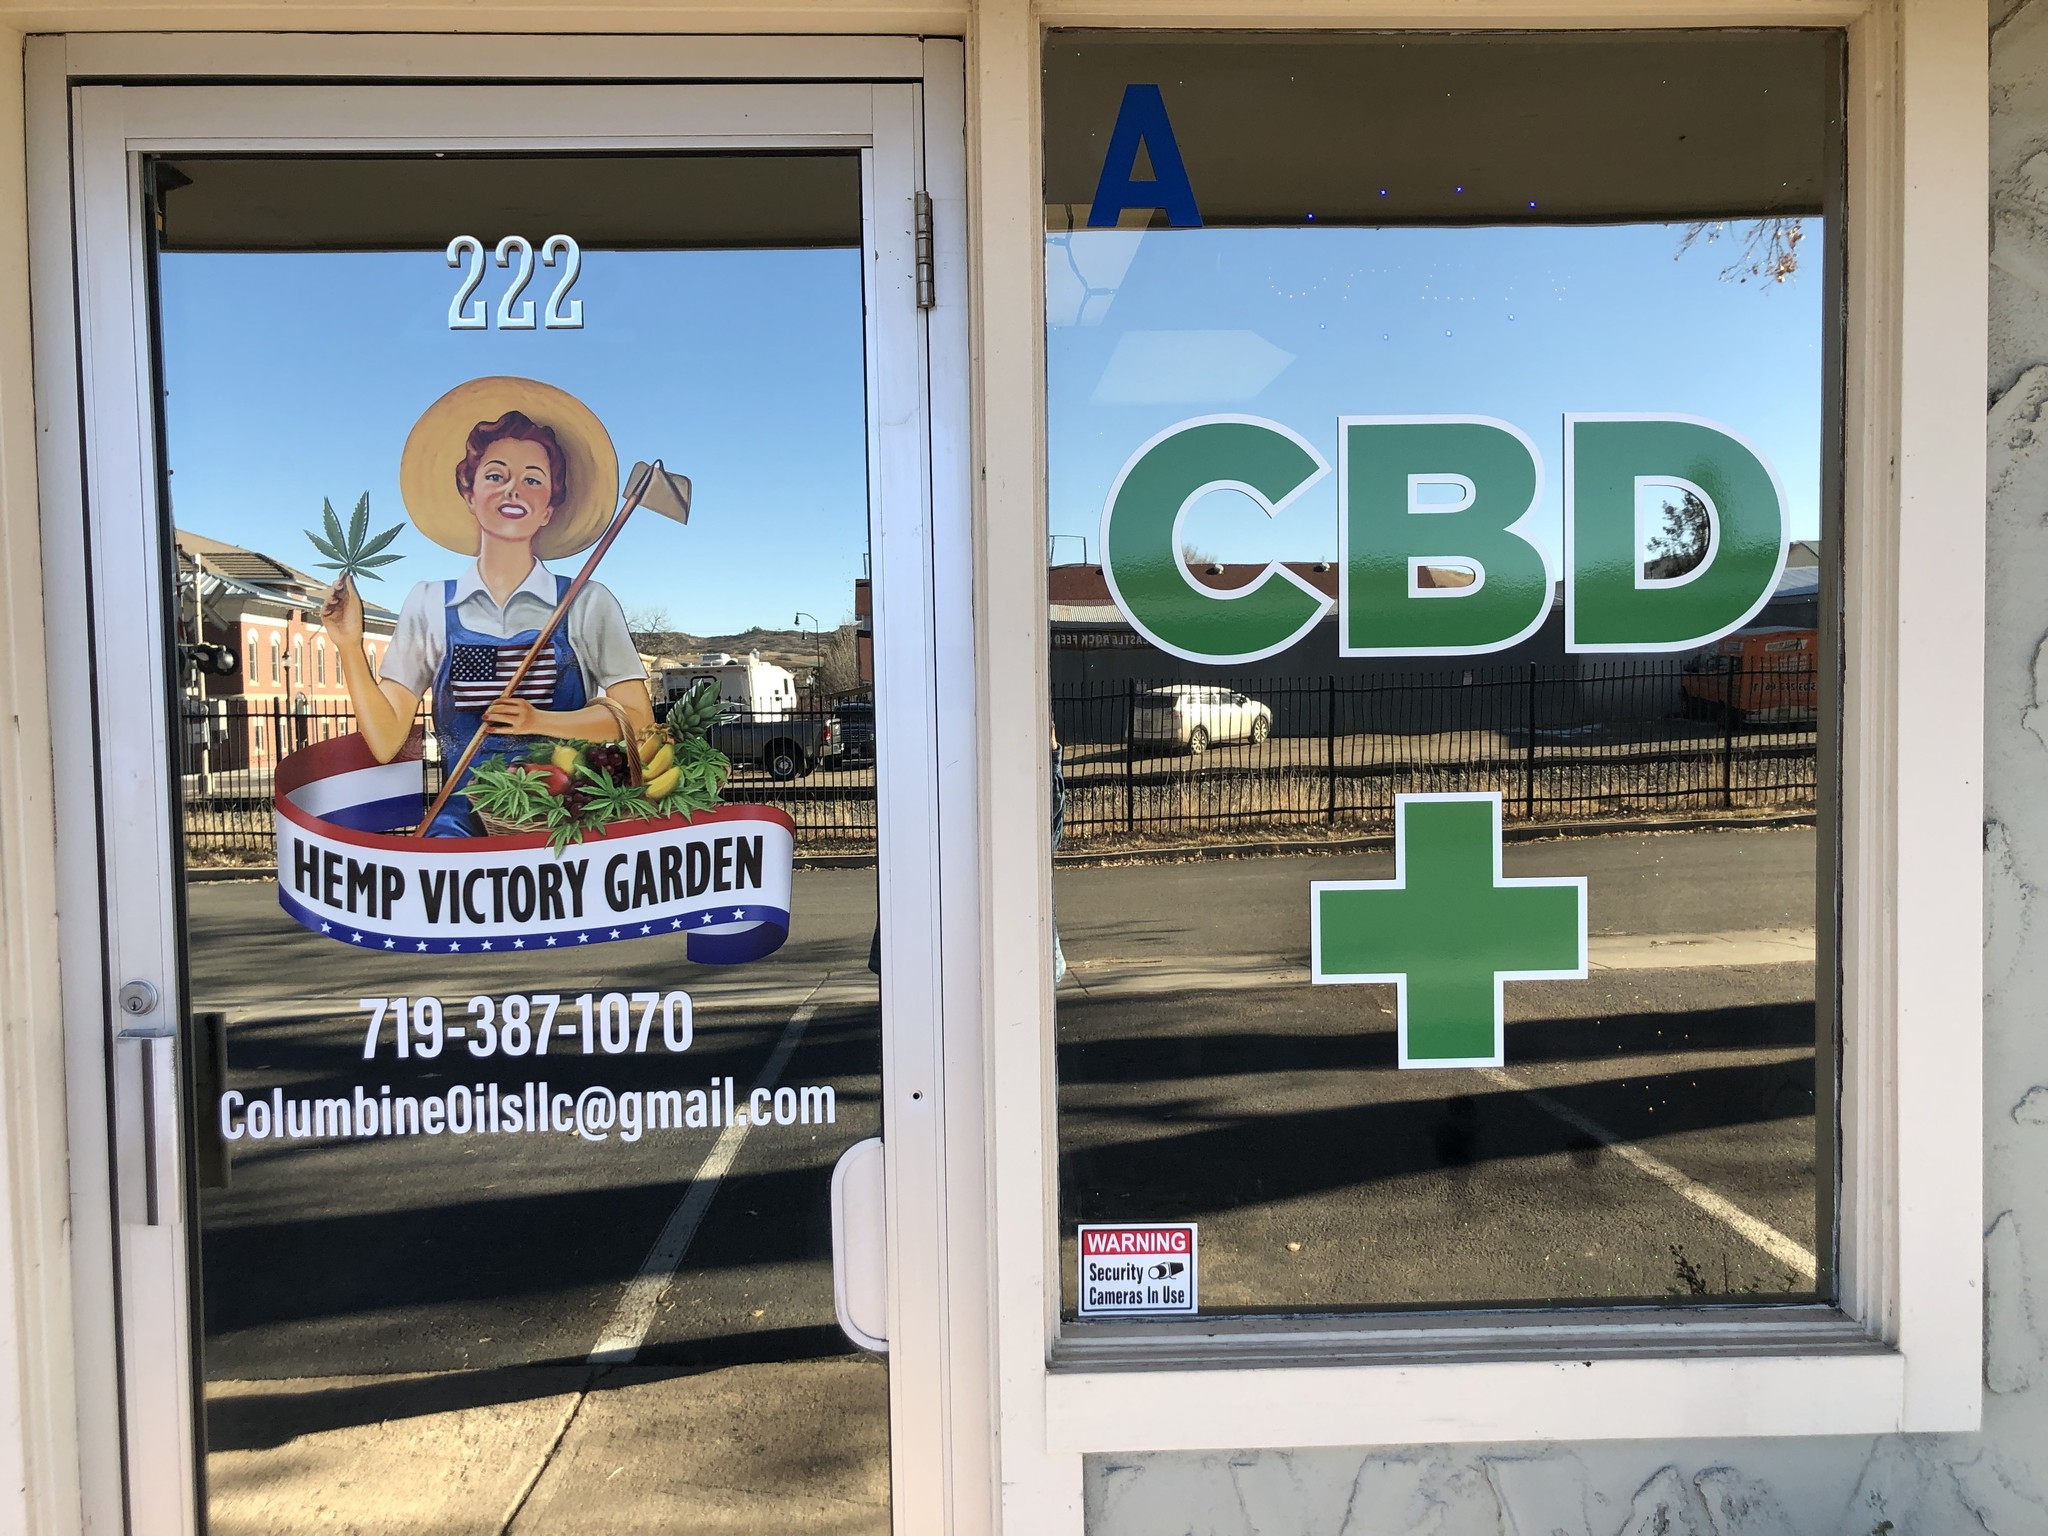 Where To Buy CBD Oil In Castle Rock?